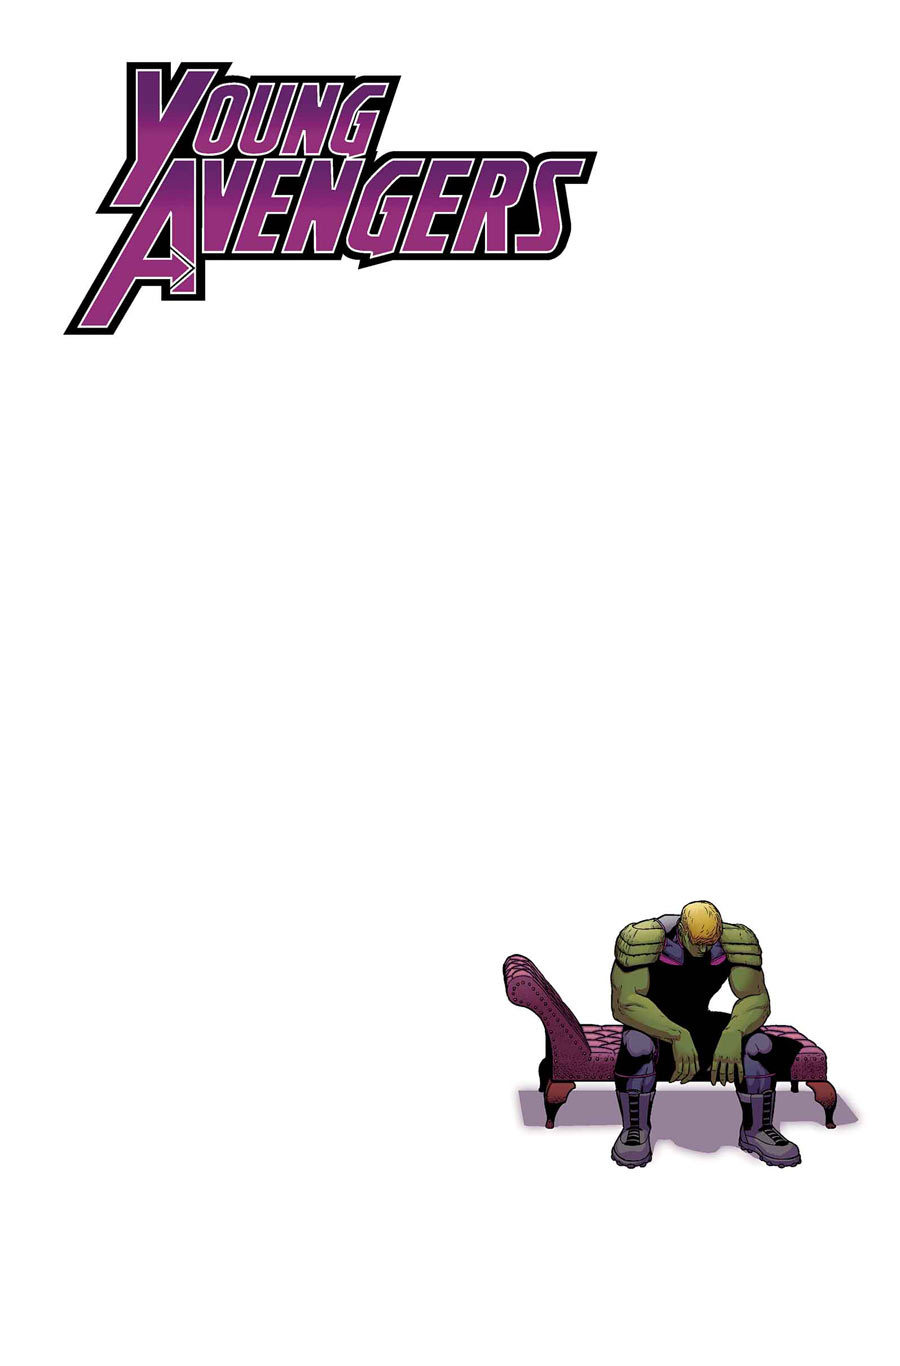 "catherina-rose:  YOUNG AVENGERS #9KIERON GILLEN (W)JAMIE MCKELVIE (A/C)• We wanted to just write ""Screaming! Screaming! Screaming!"" for this solicit, but we're told we need boring old facts. :(• Anyway! The Young Avengers road trip across the multiverse goes proper crazy as it reaches it's destination. It's destination is mainly EXCITEMENT and HEARTBREAK.• Several Young Avengers decide what to do next. The question is, whether what they do next is to be Young Avengers…• Honestly, screaming.32 PGS./Rated T+ …$2.99  Guuuuyys…. What are you doing to me? Why is Teddy on that couch? Oh my glob, don't make me read something horribly tragic on my birthday!   But seriously, Kieron's always so good at building up future issues and, no matter what happens to the characters, I always look forward to what's coming."